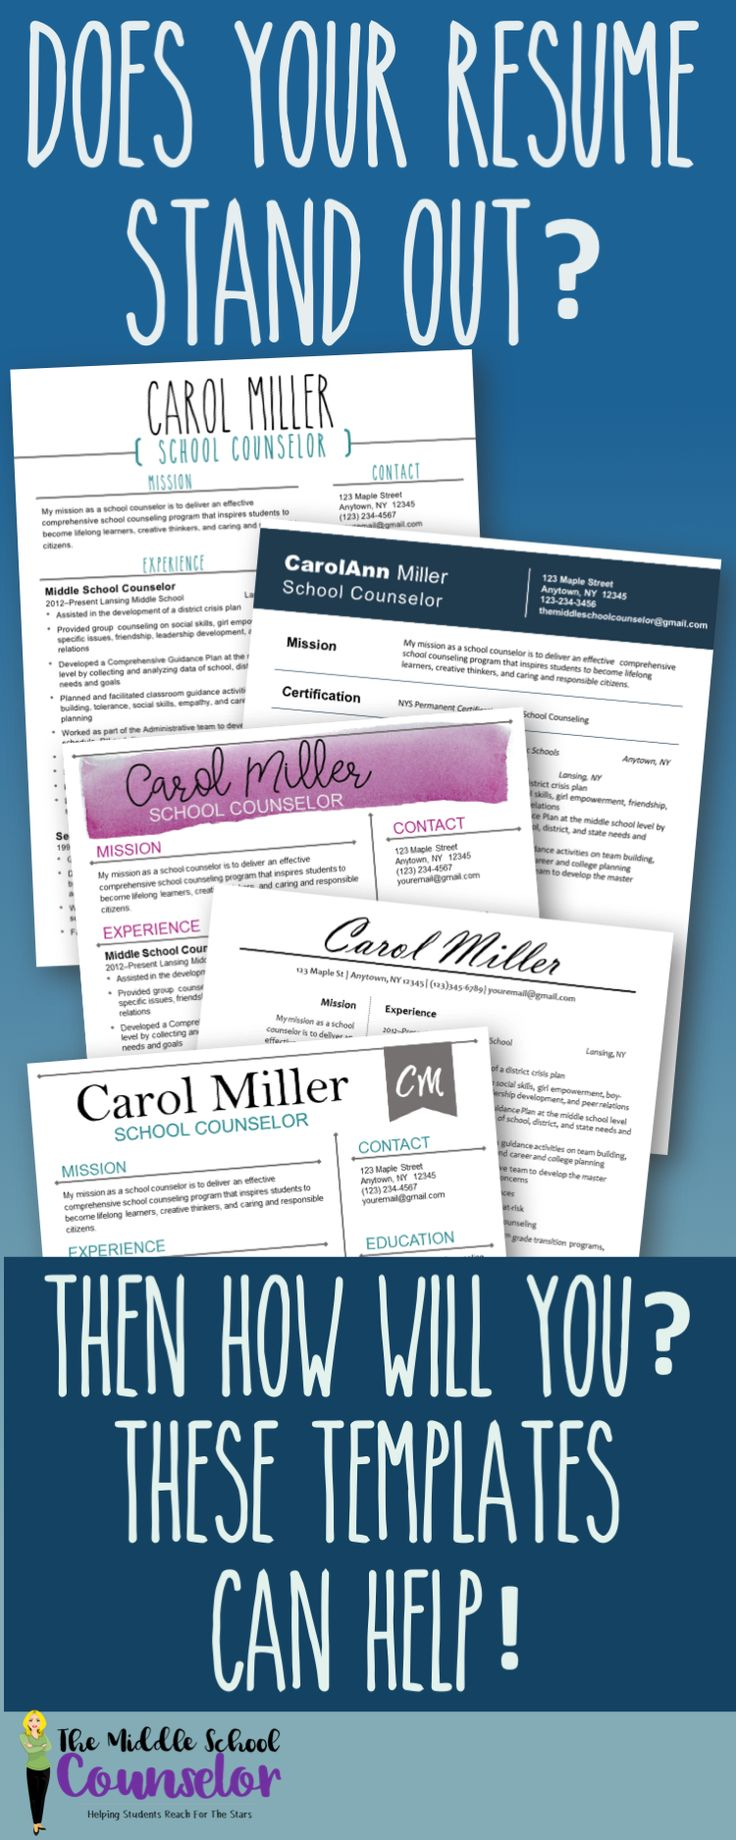 mental health counselor resume%0A Resume Templates For Counselors  Teachers and Therapists